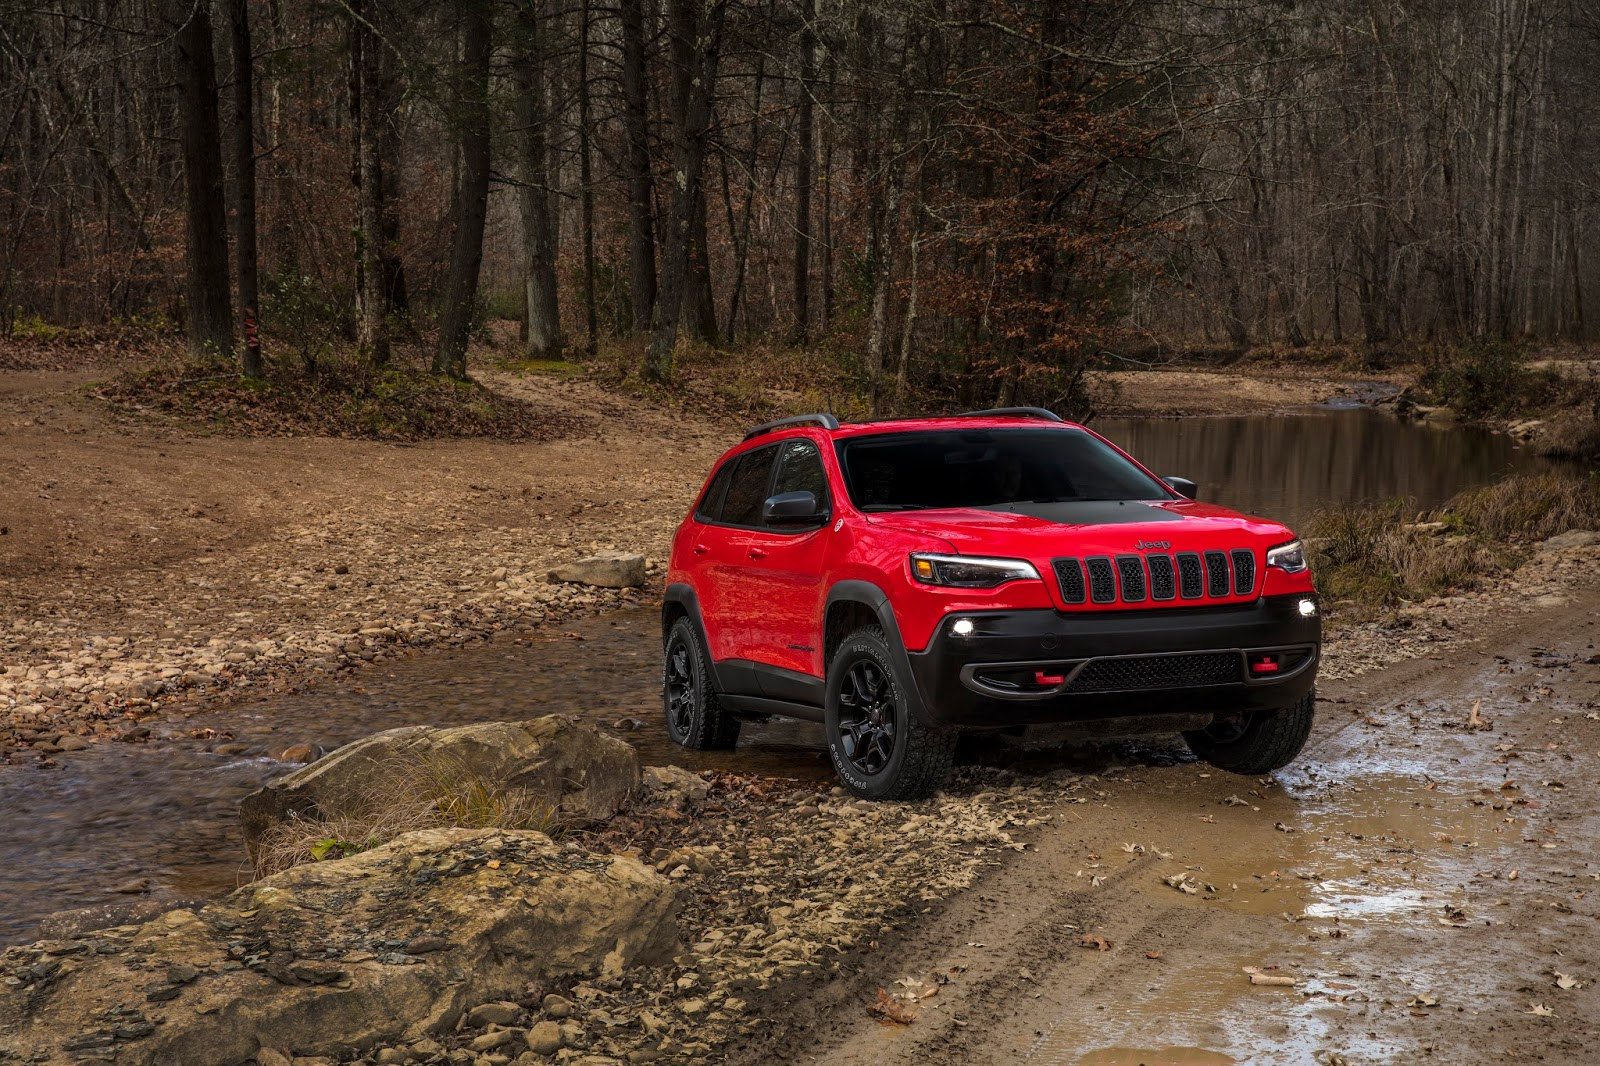 2019 Jeep Cherokee Wrangler Powertrain To Meet Consumer Demand Around The World All Models Sold Outside North America Are Available In Both Left And Right Hand Drive Configurations With